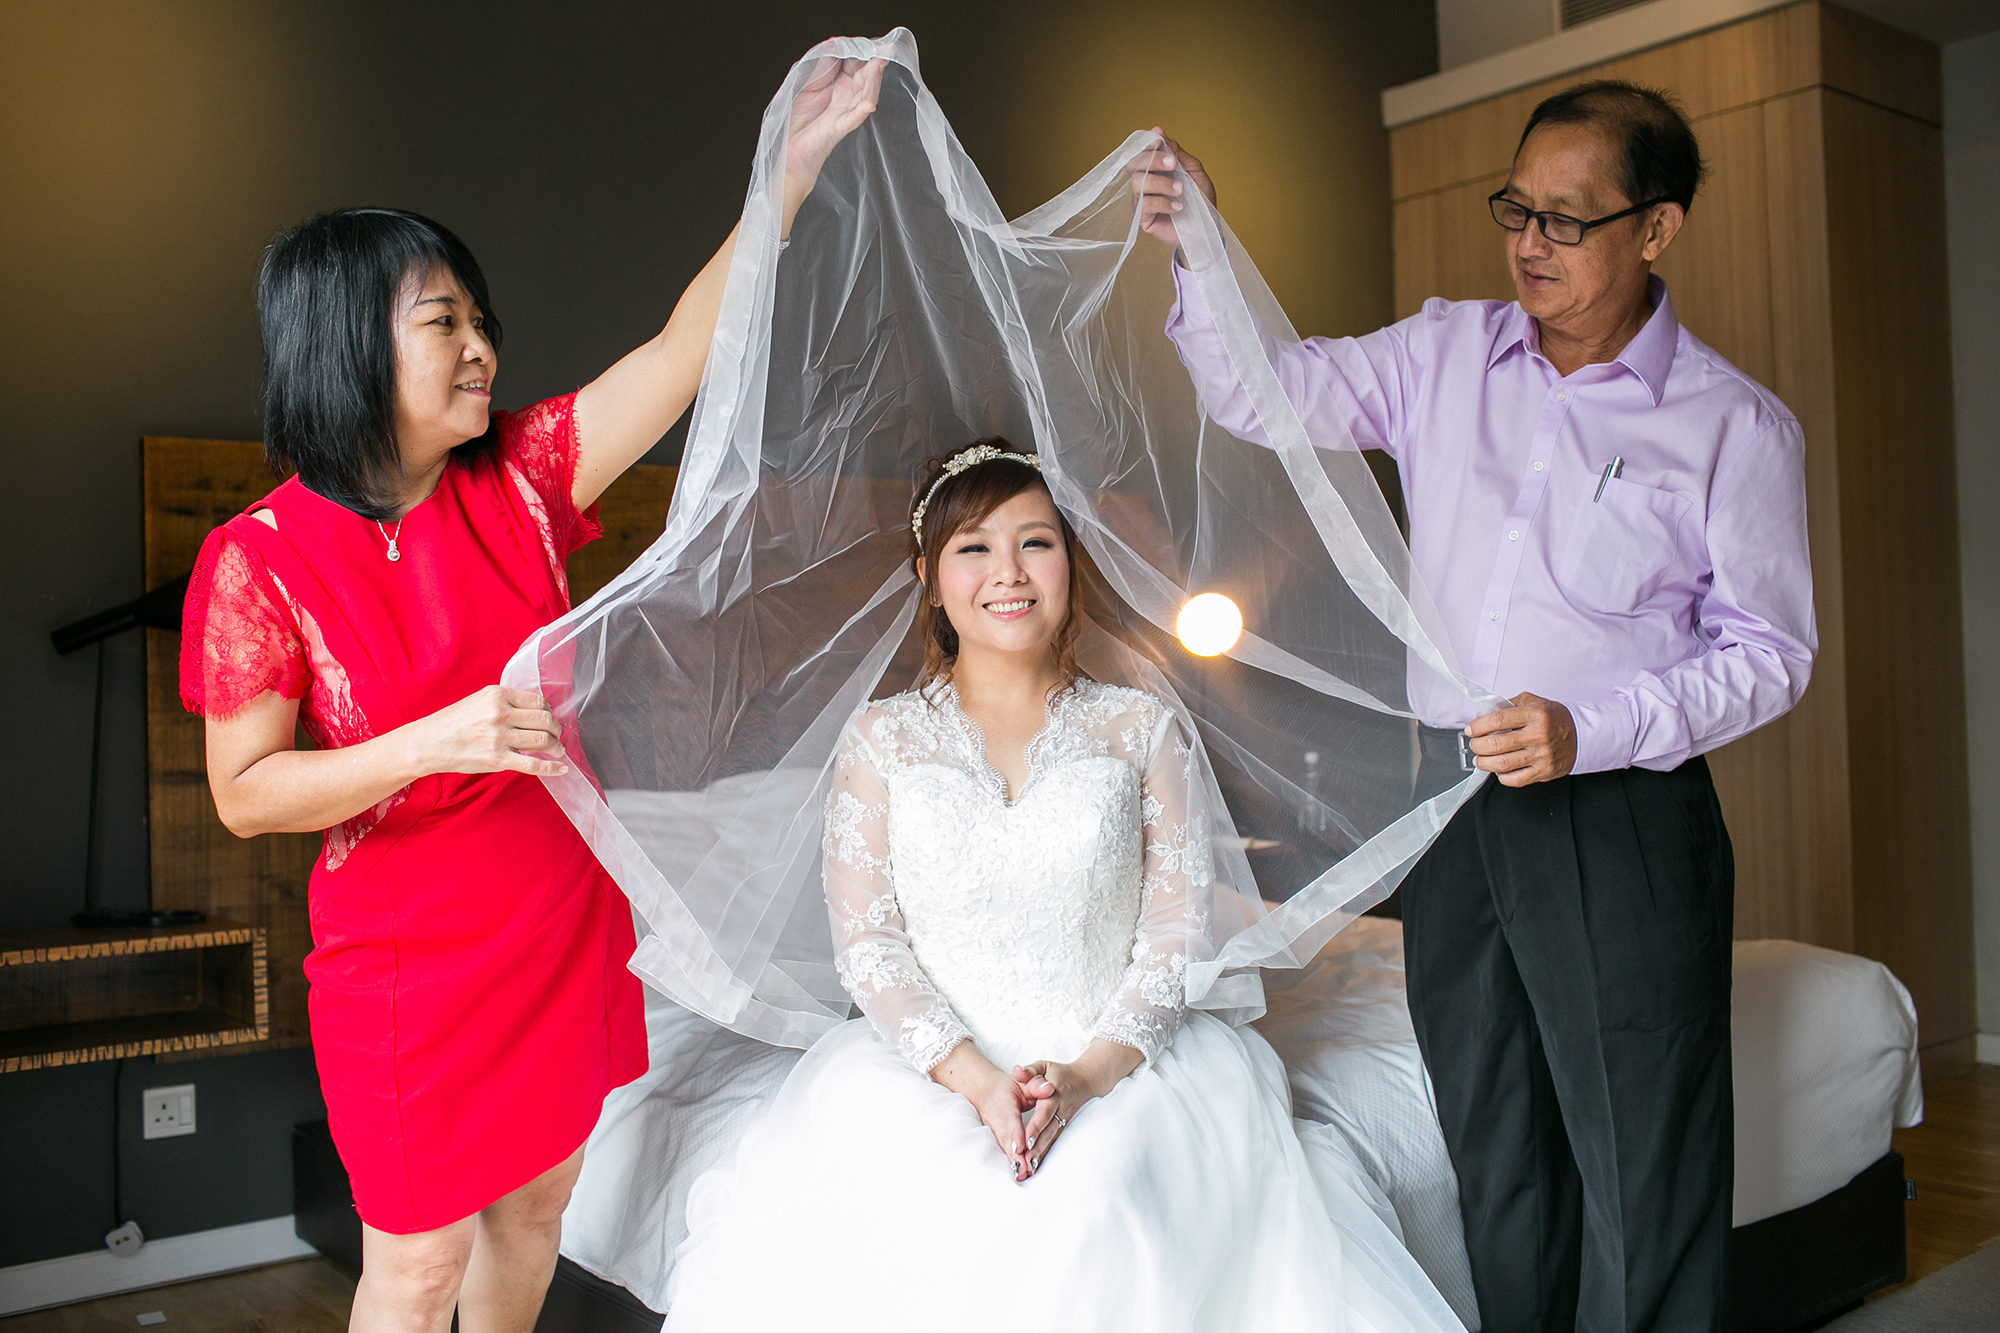 Parents veiling bride